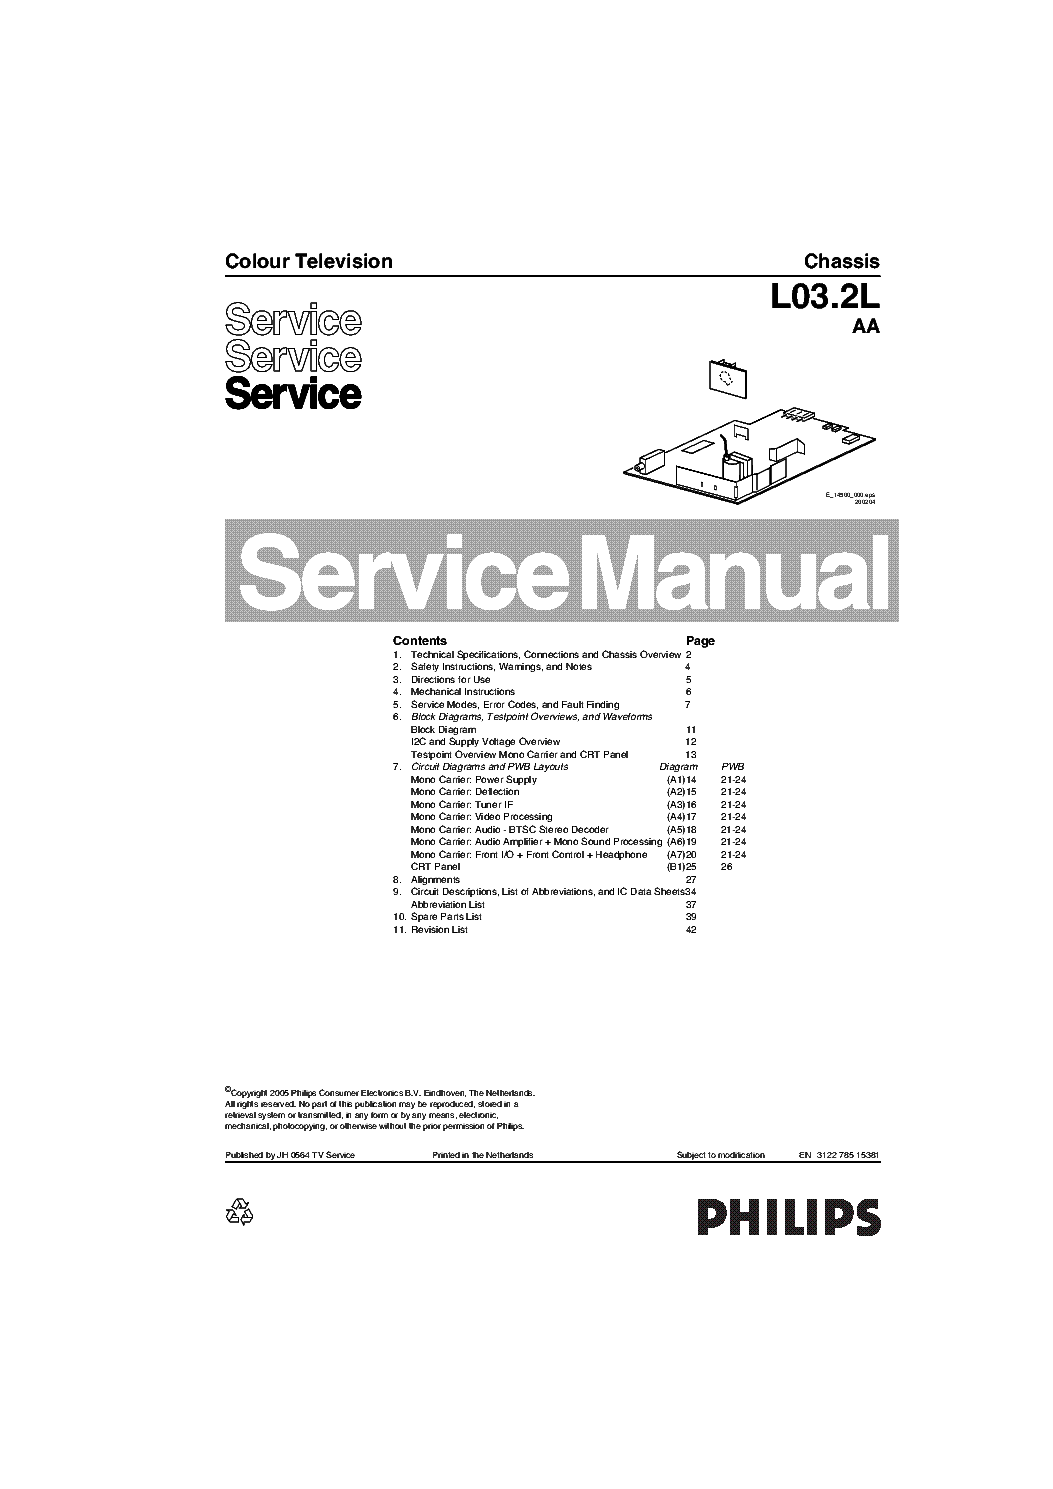 Philips 14pt3005 55 Chassis L03 2laa Sm Service Manual